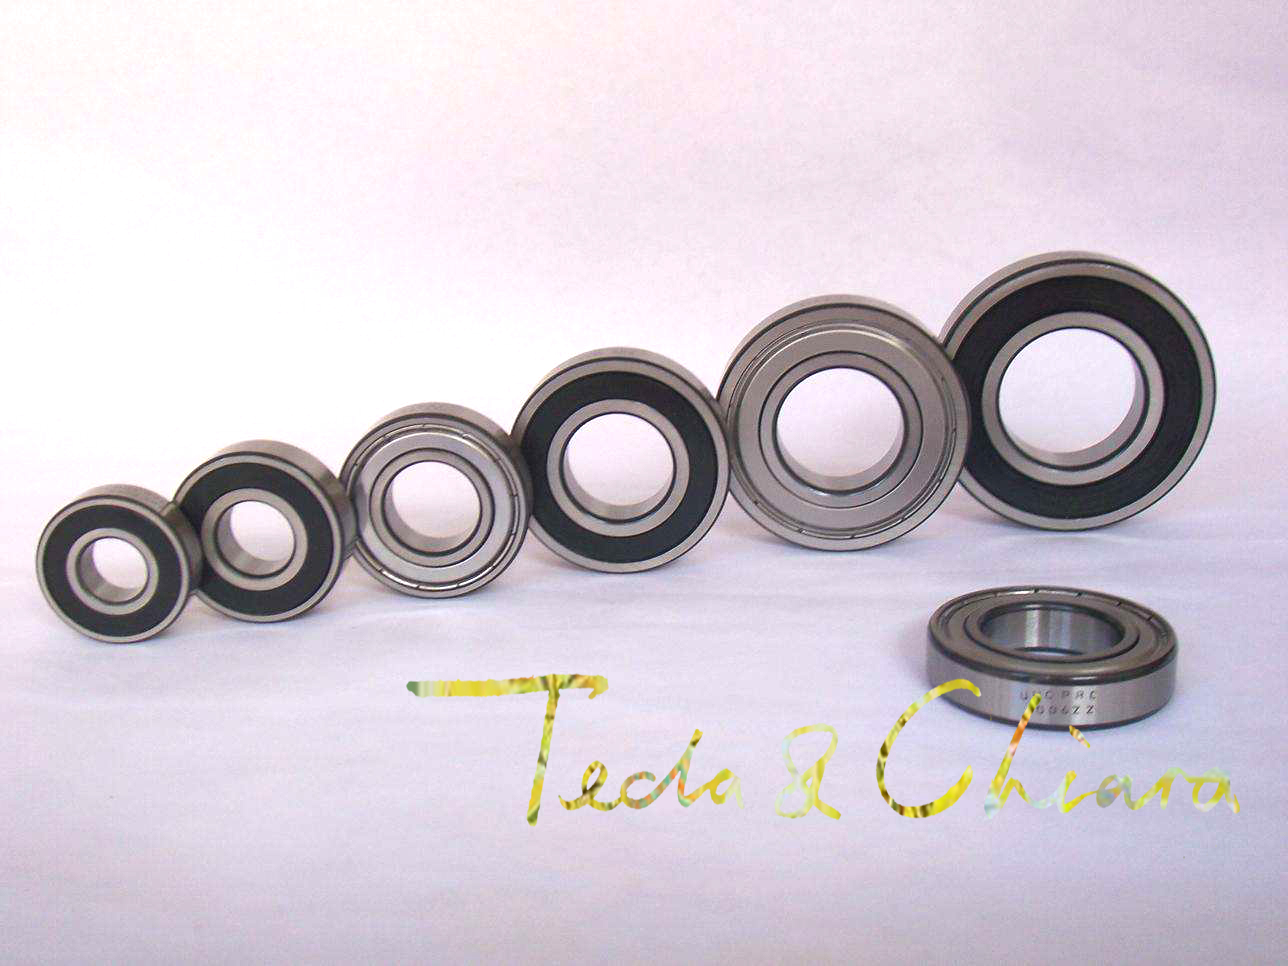 10Pcs 608 608ZZ 608RS 608-2Z 608Z 608-2RS ZZ RS RZ 2RZ AEBC-5 Deep Groove Ball Bearings 8 x 22 x 7mm High Quality все цены